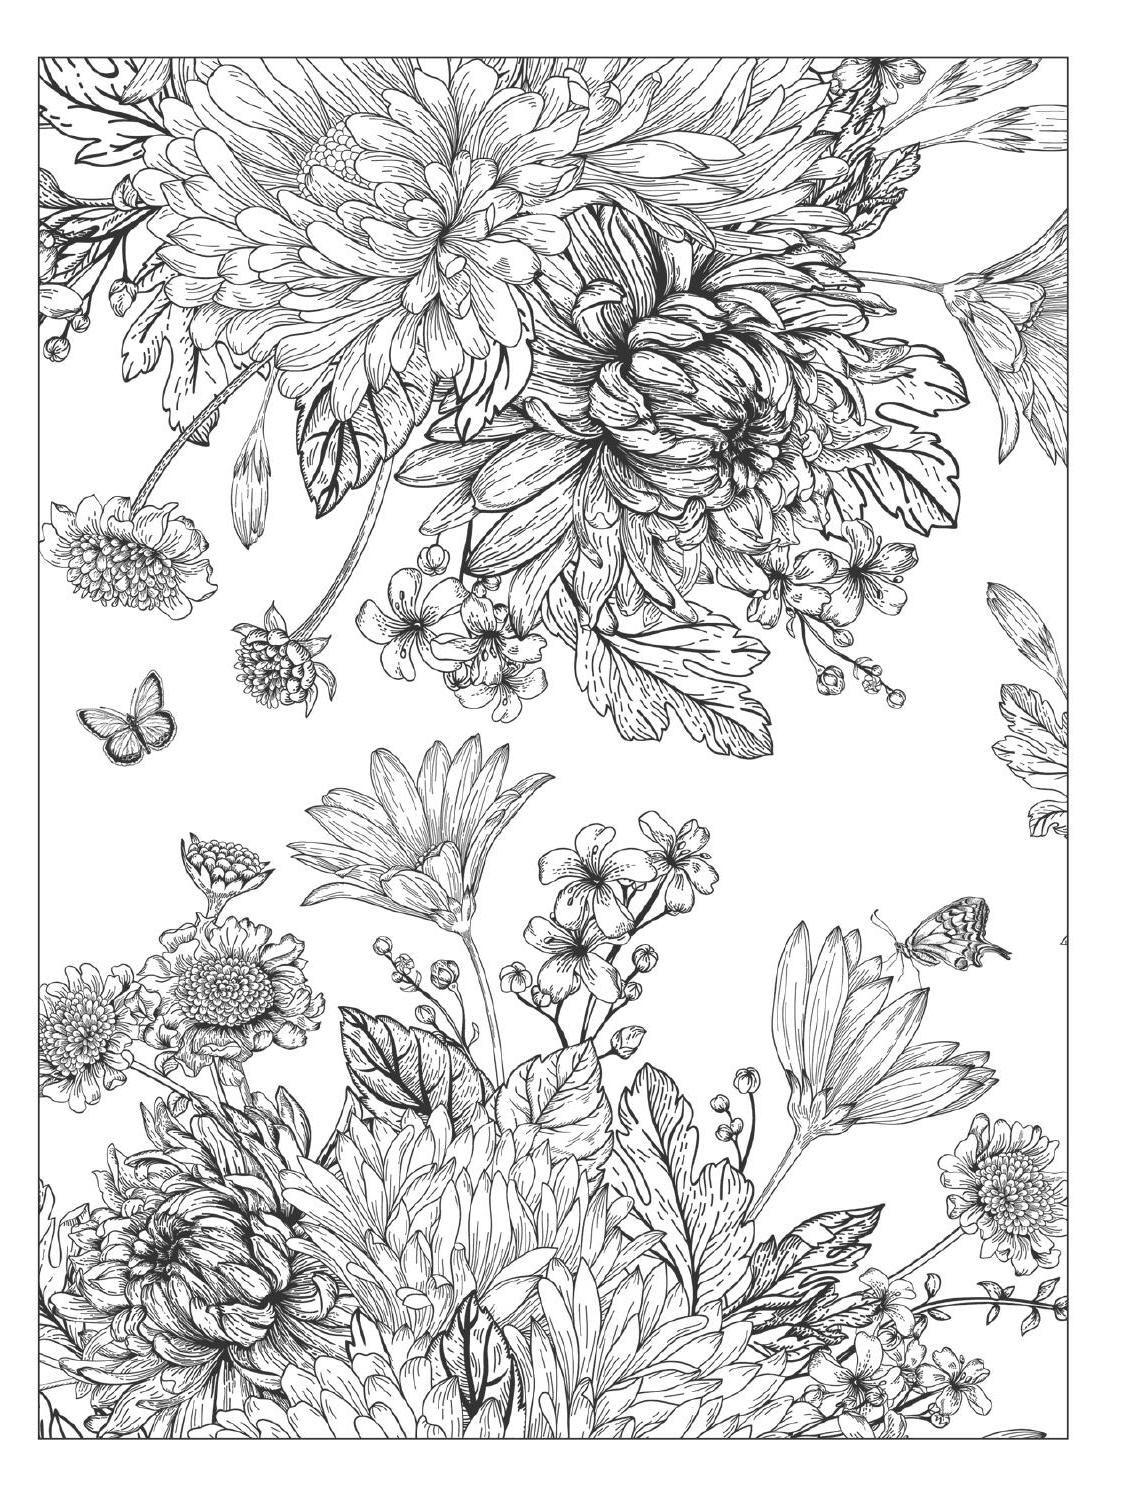 Beautiful Flowers Detailed Floral Designs Coloring Book Preview Designs Coloring Books Garden Coloring Pages Flower Coloring Pages